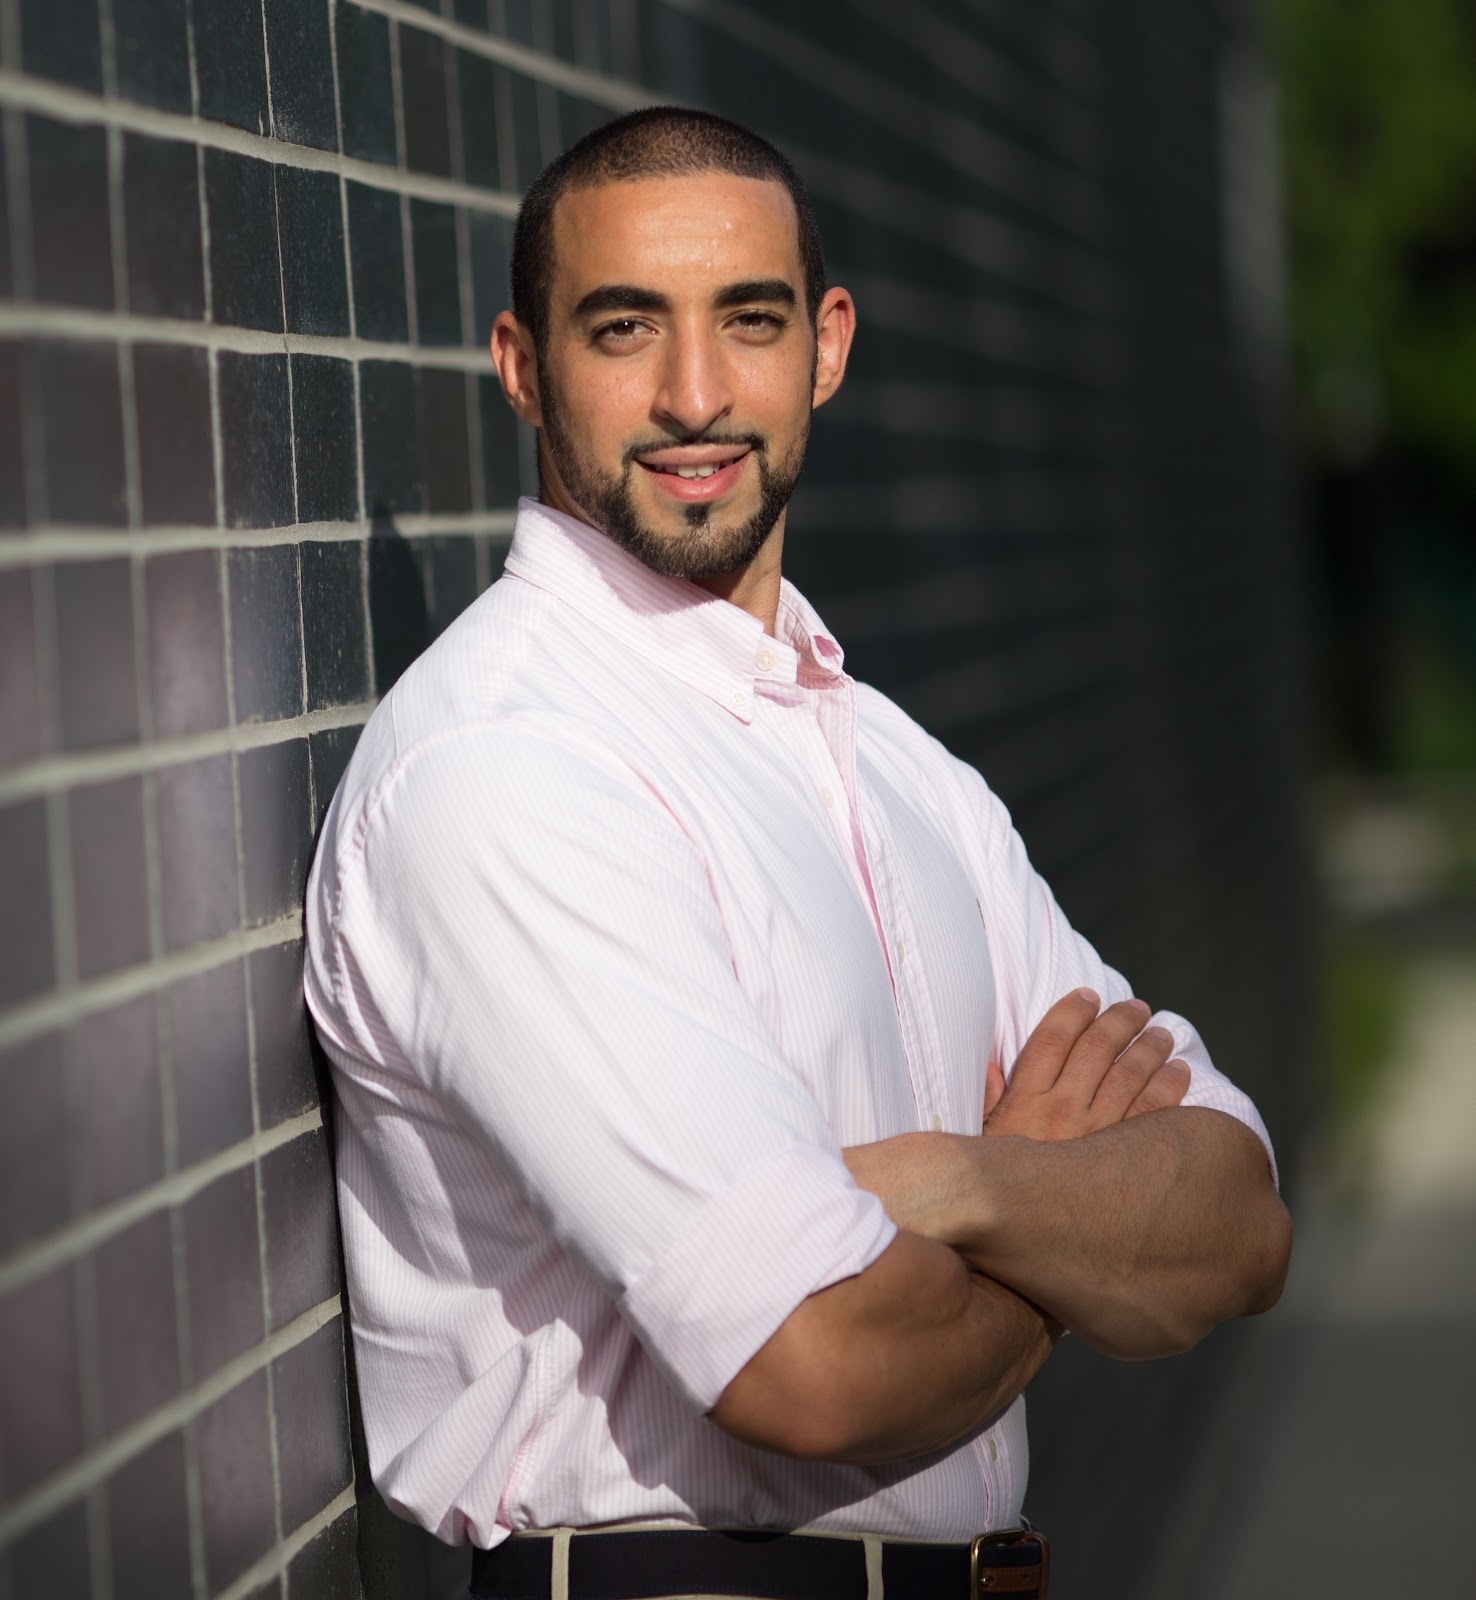 Mohammed Ashour Co-Founder and CEO